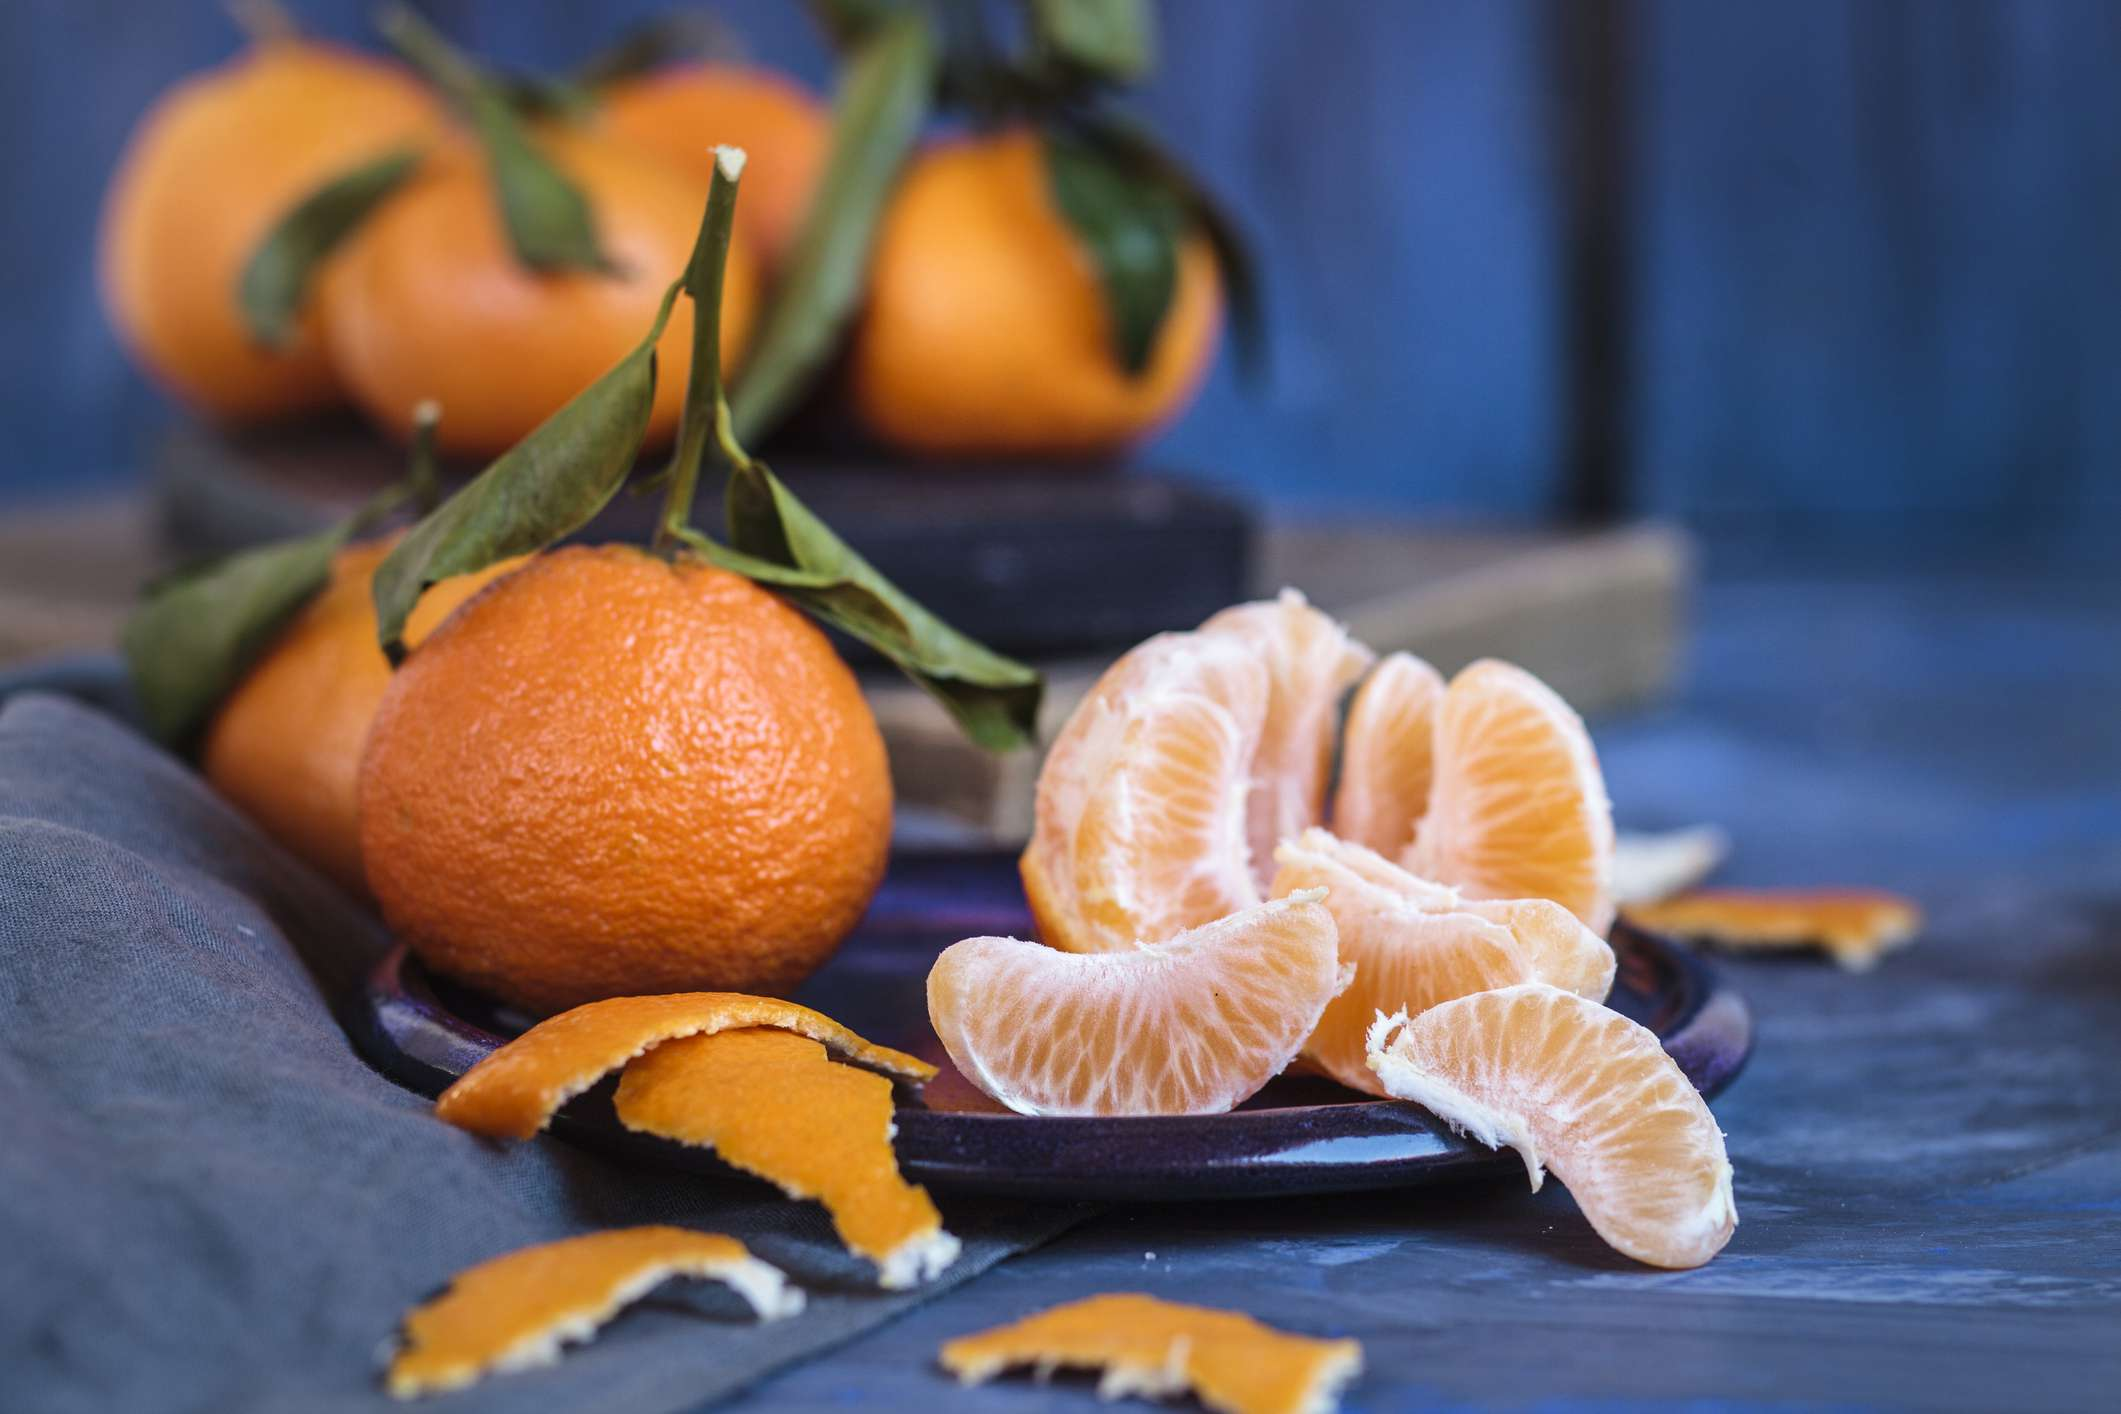 A group of clementines